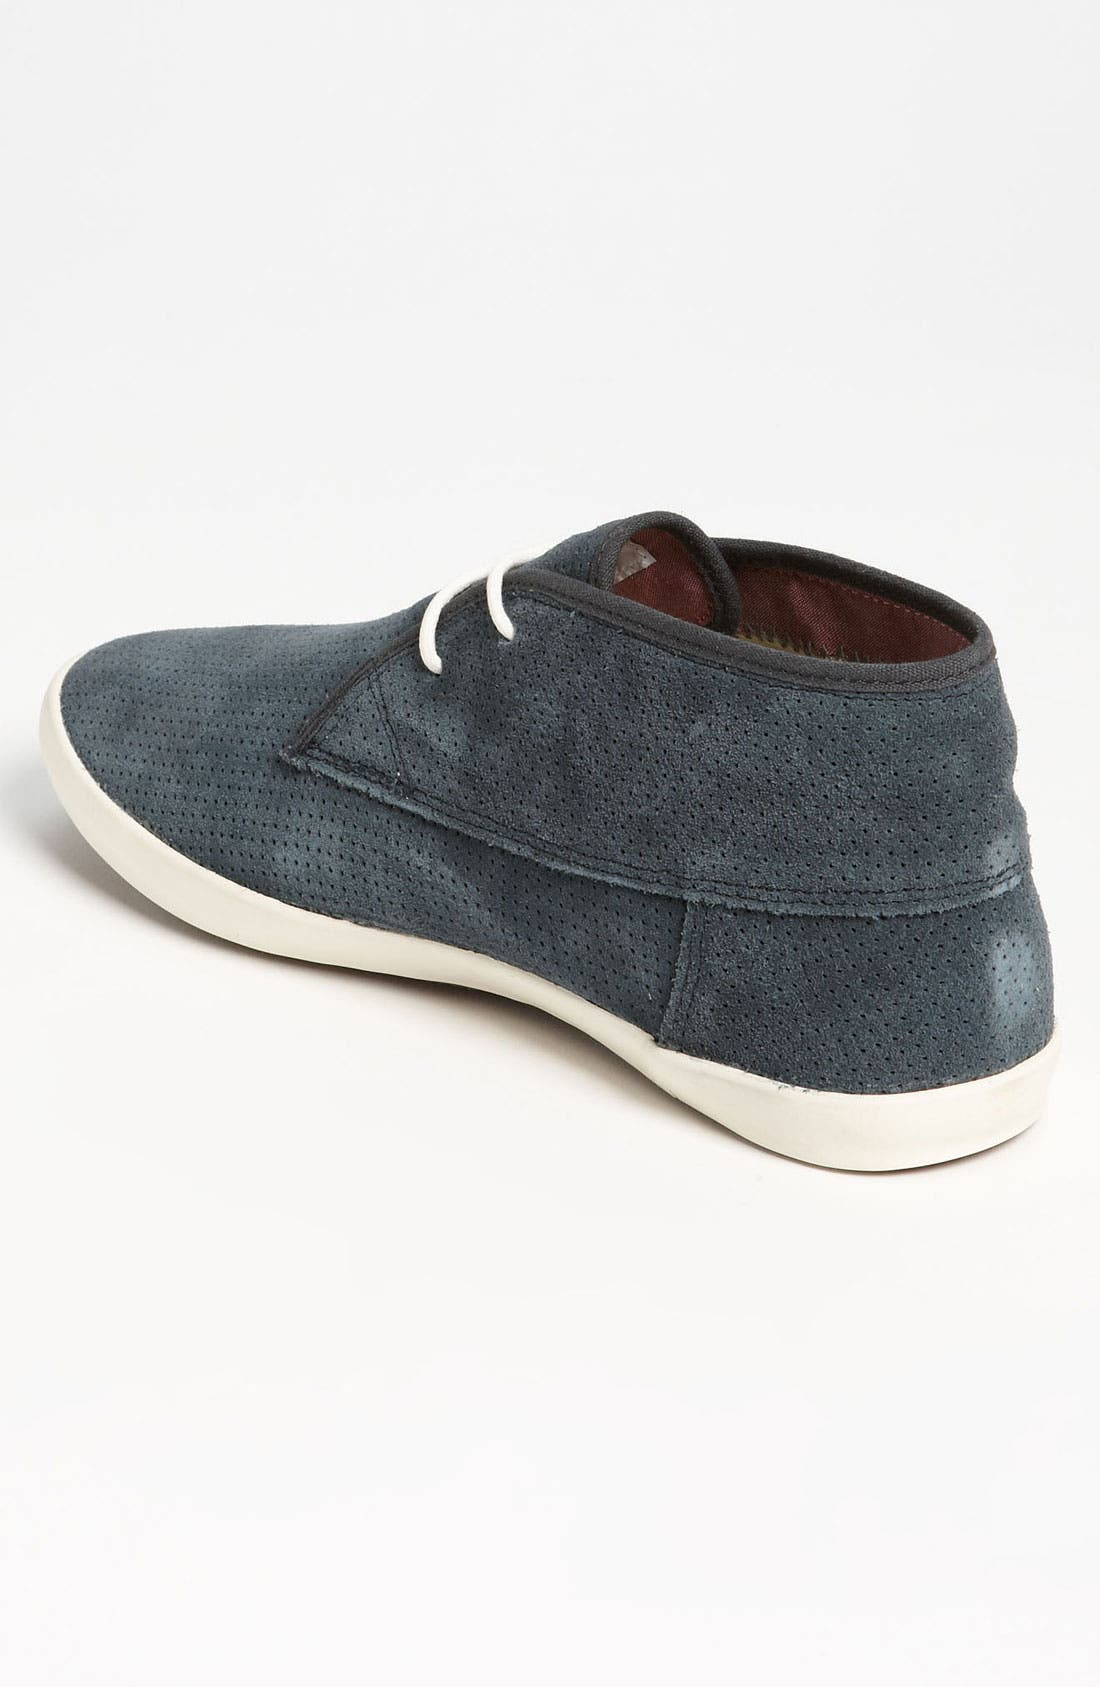 Alternate Image 2  - SeaVees '04/60 Two-Eye Floater' Perforated Chukka Boot (Online Only)